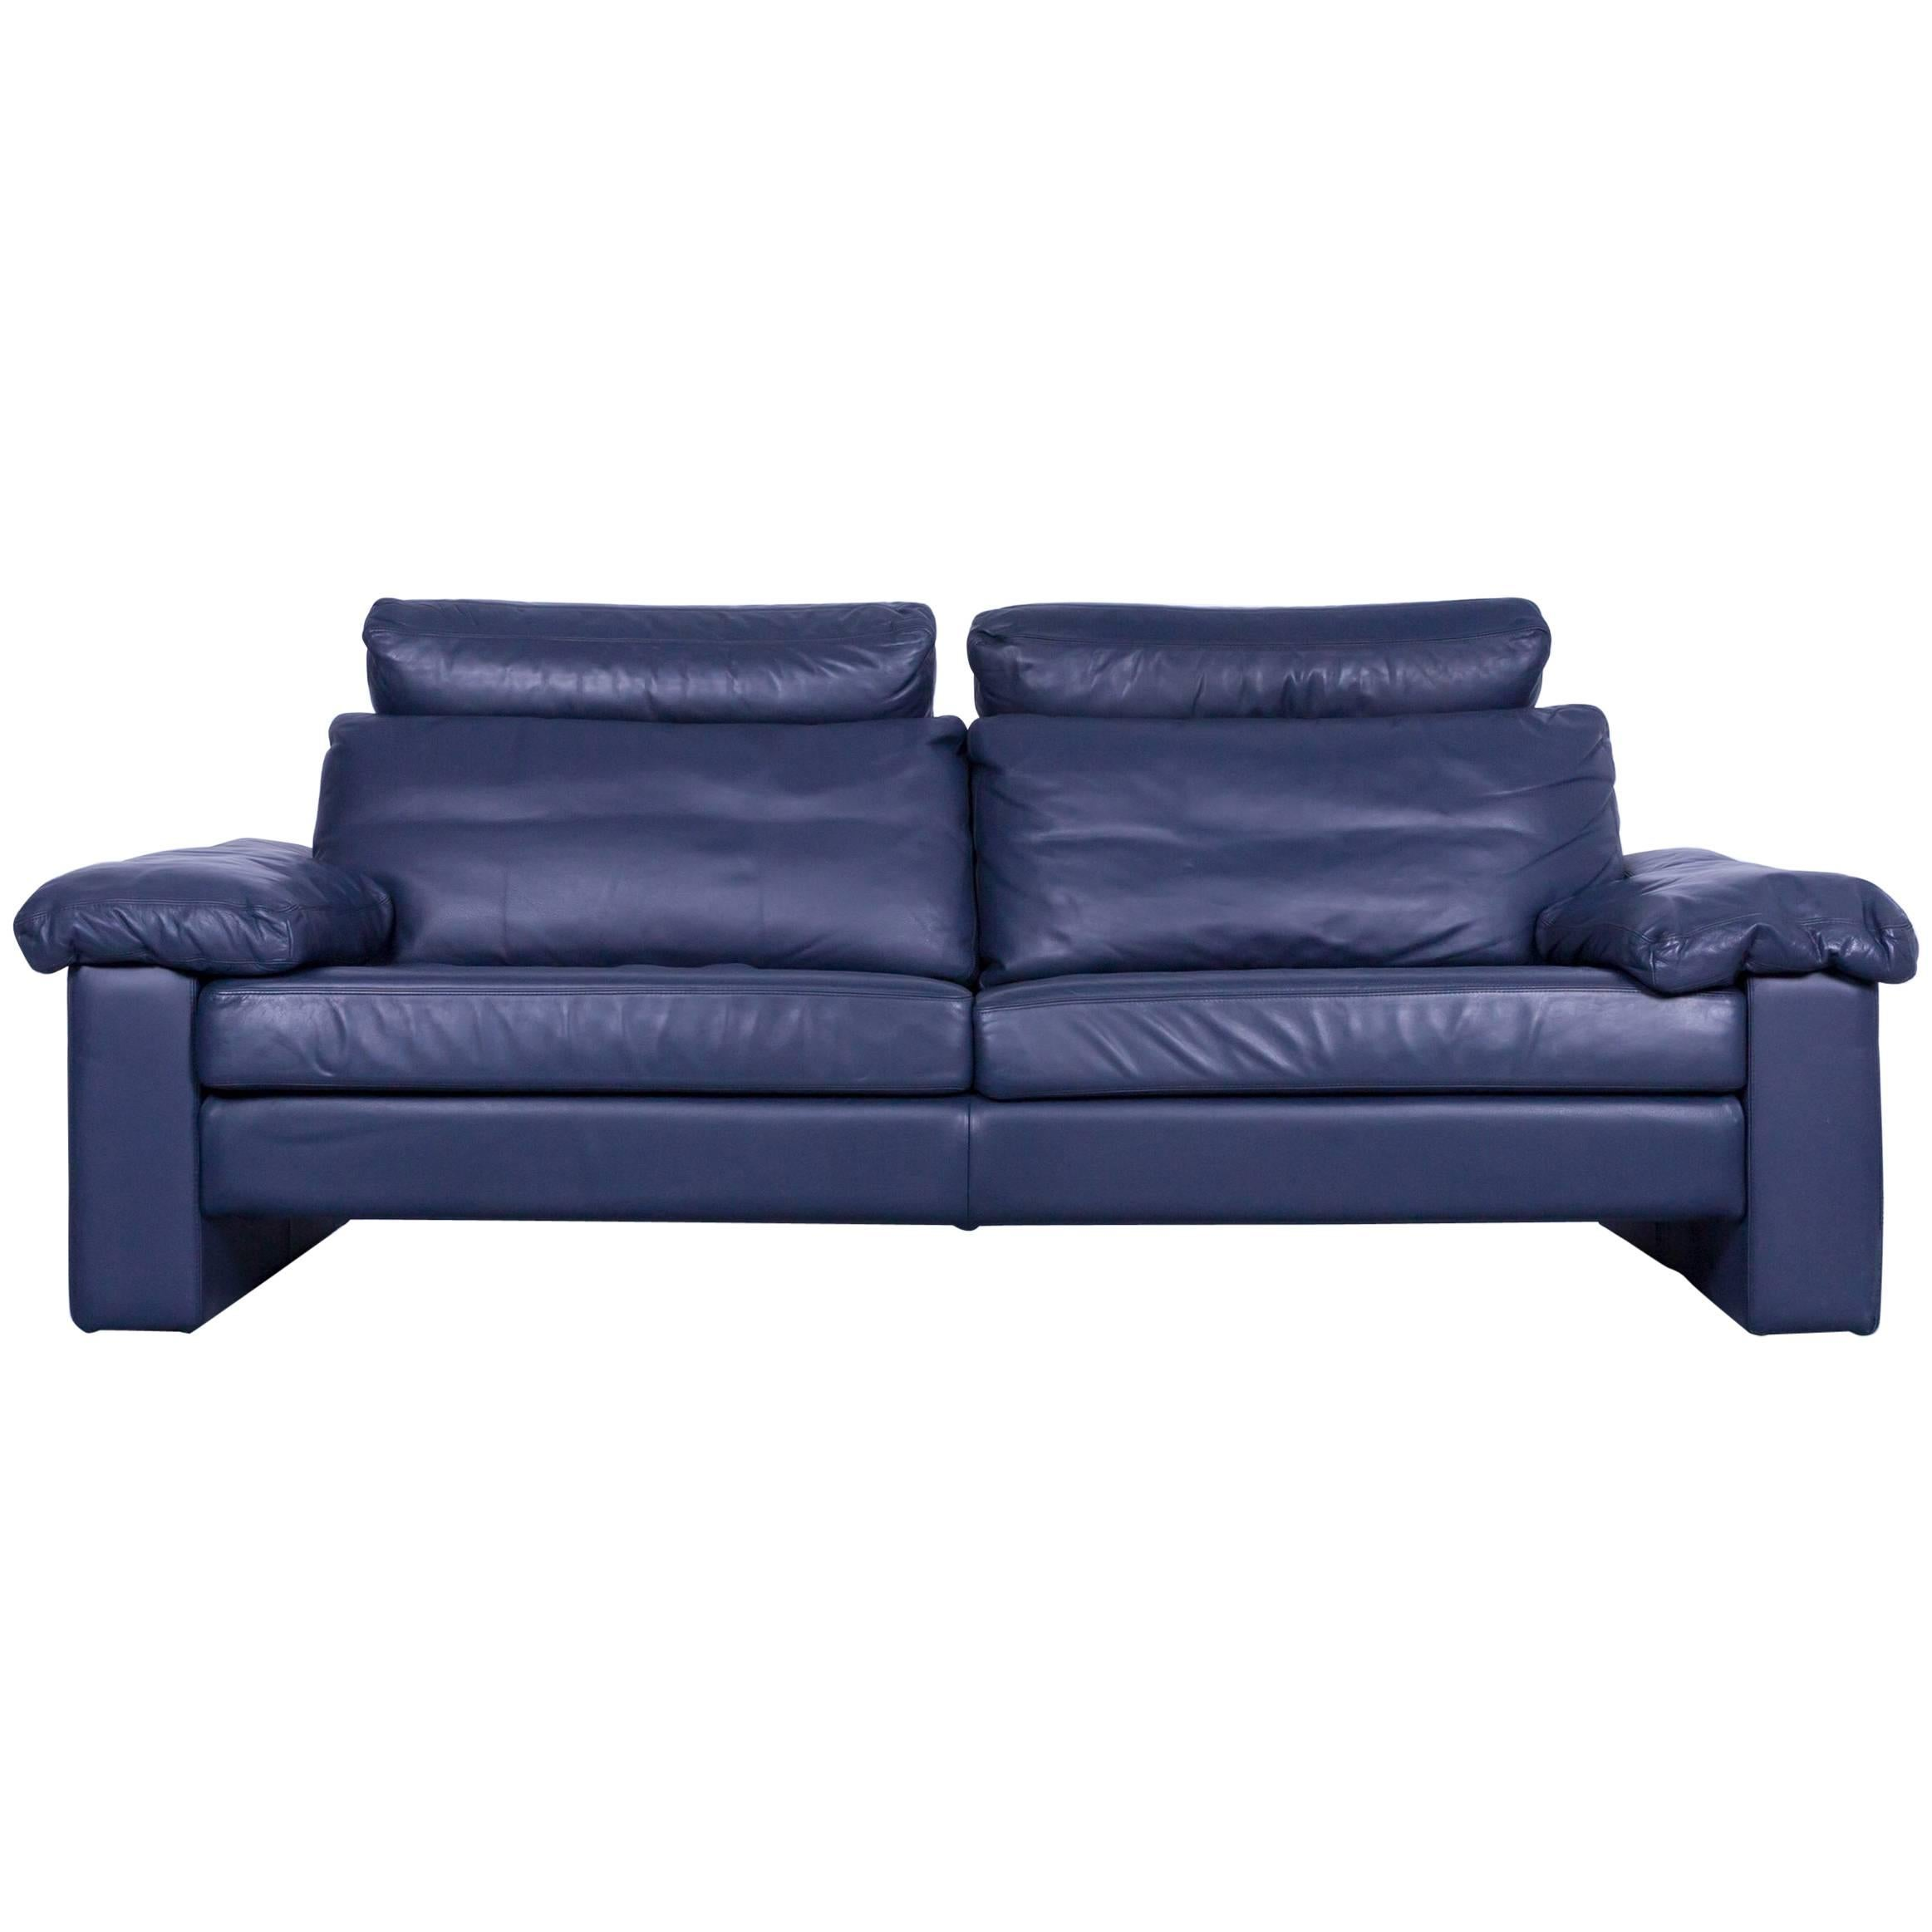 Designer Couch Cor Conseta Designer Sofa Leather Blue Three Seat Couch Modern